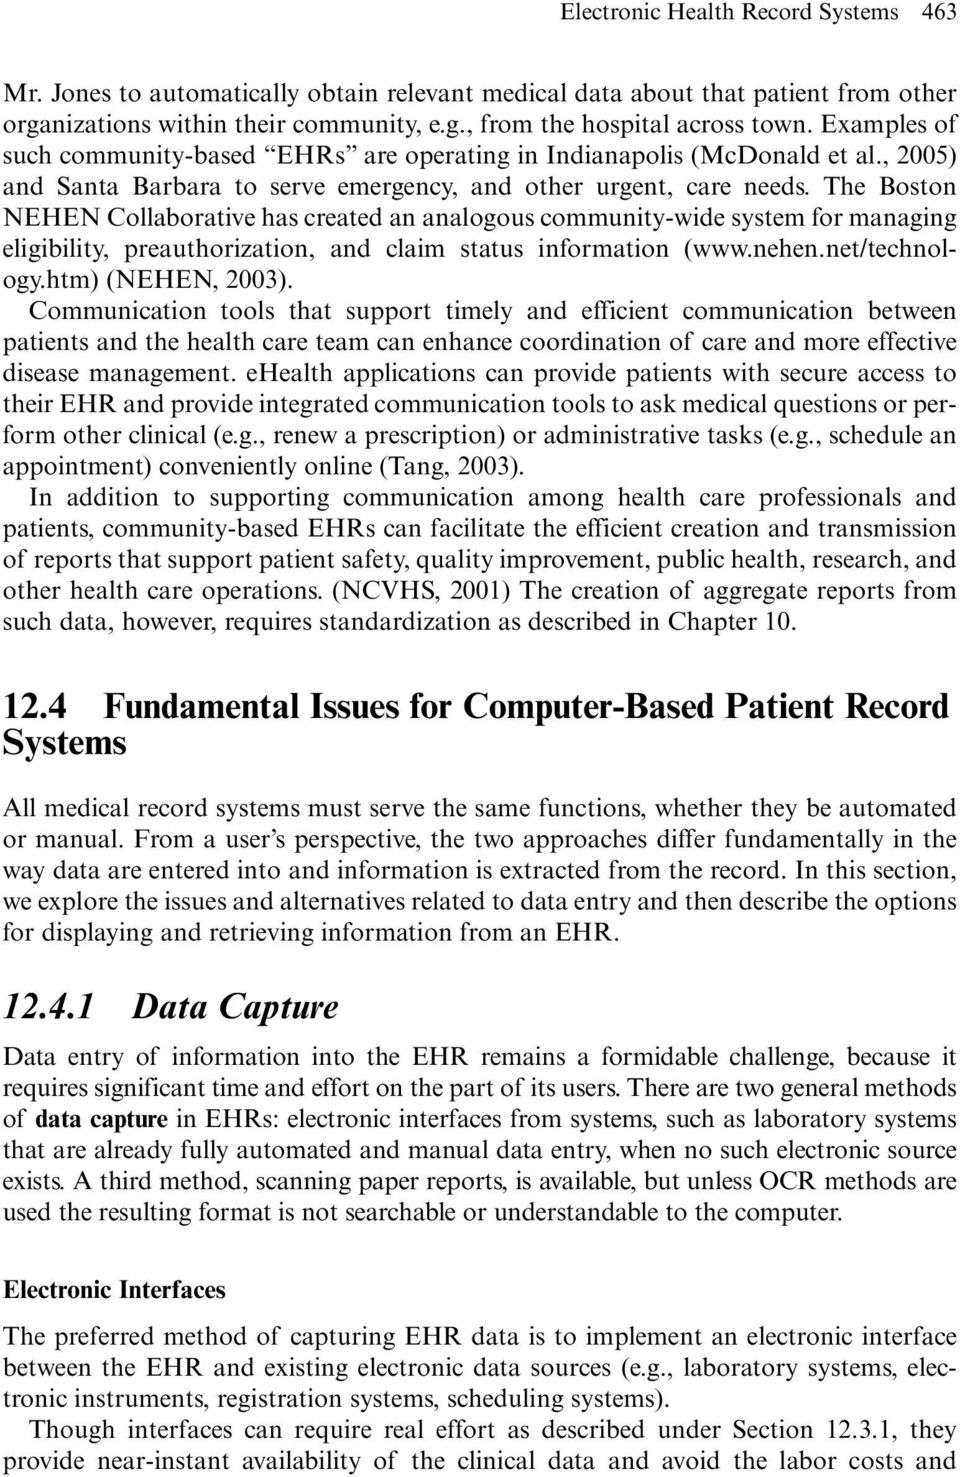 The Boston NEHEN Collaborative has created an analogous community-wide system for managing eligibility, preauthorization, and claim status information (www.nehen.net/technology.htm) (NEHEN, 2003).